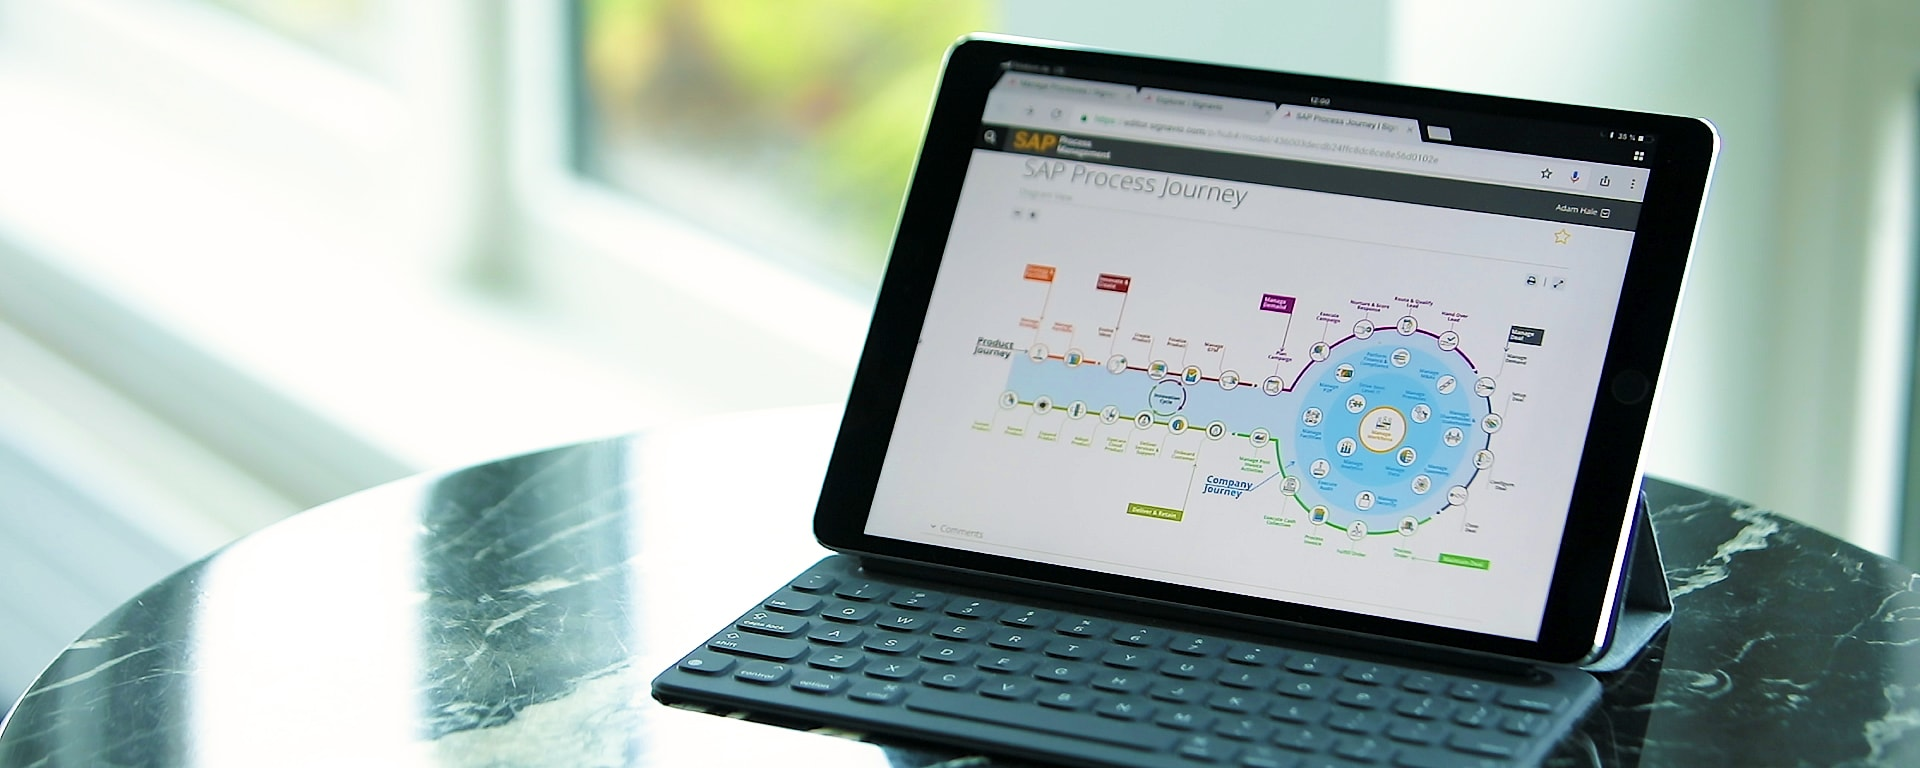 SAP Process Journey auf einem Tablet